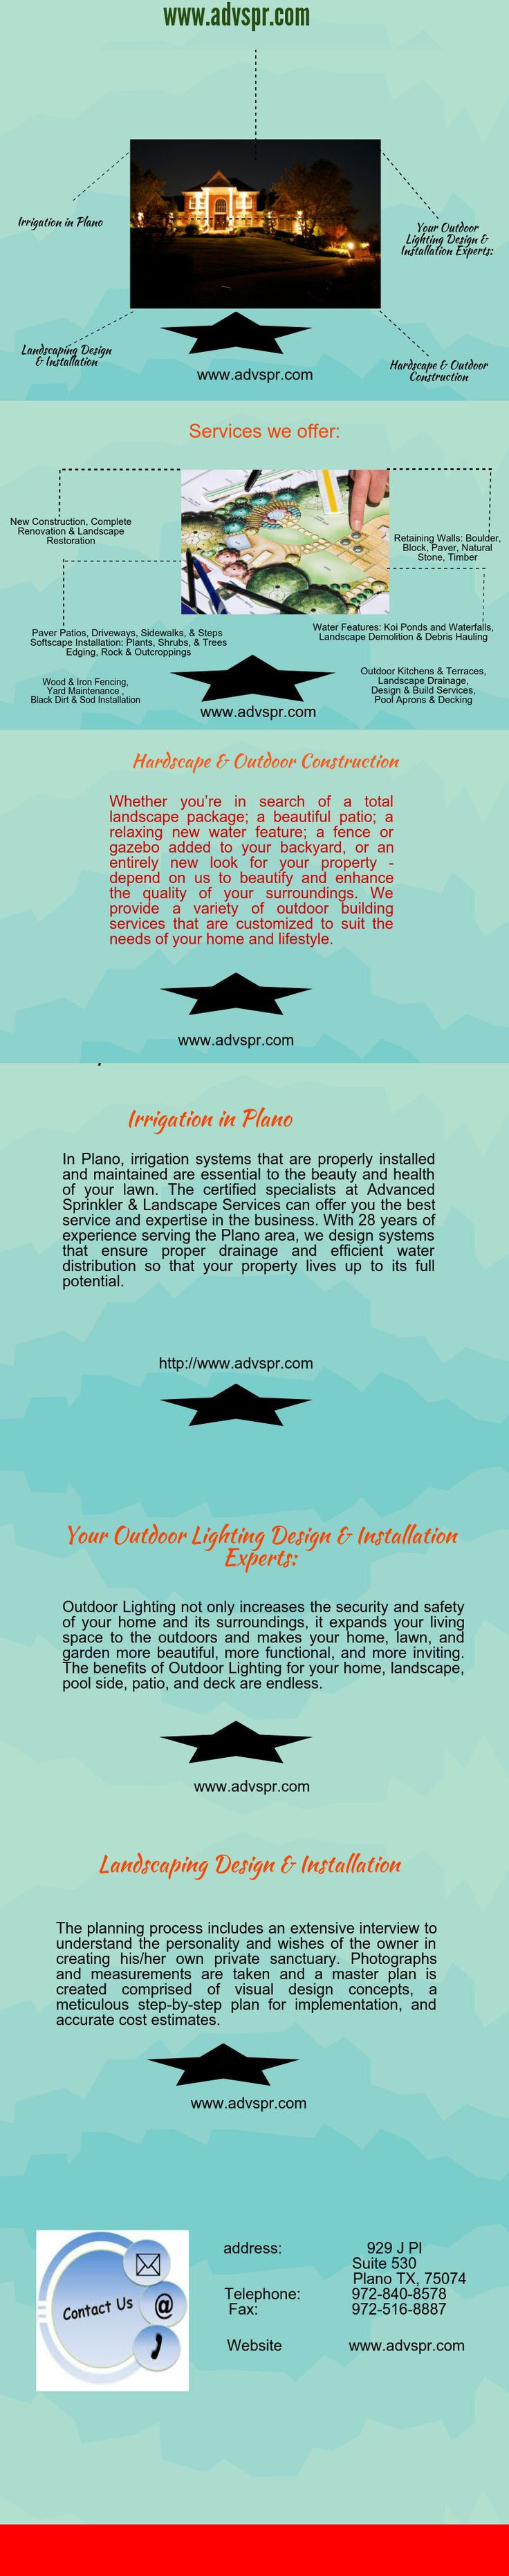 Best Ideas About Irrigation Companies On Pinterest Grey Water - Home irrigation design